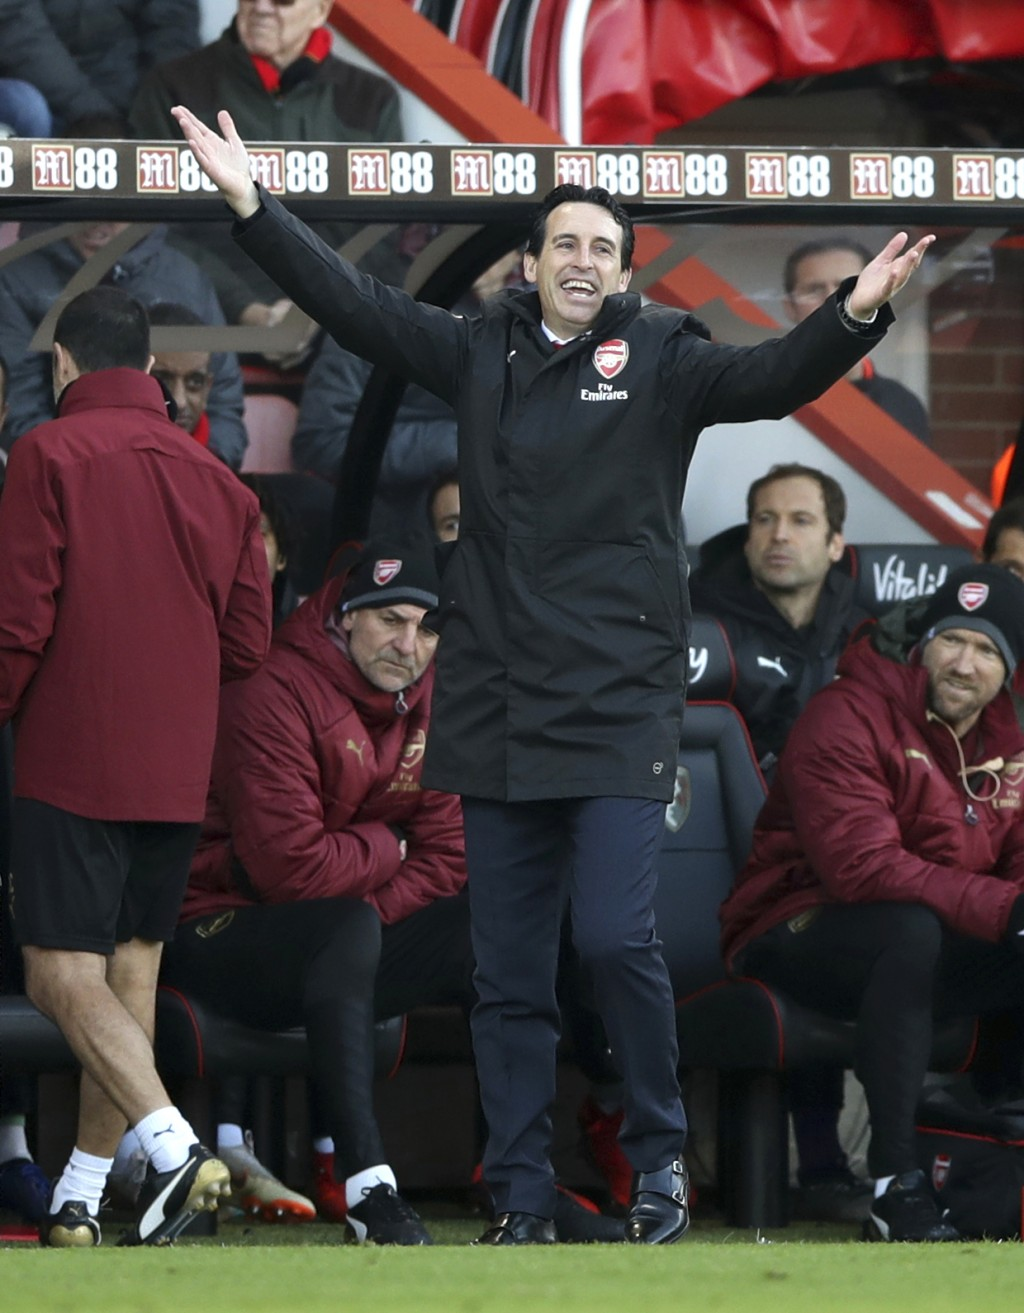 Arsenal head coach Unai Emery reacts during a Premier League soccer match between Bournemouth and Arsenal, at The Vitality Stadium, Bournemouth, Sunda...